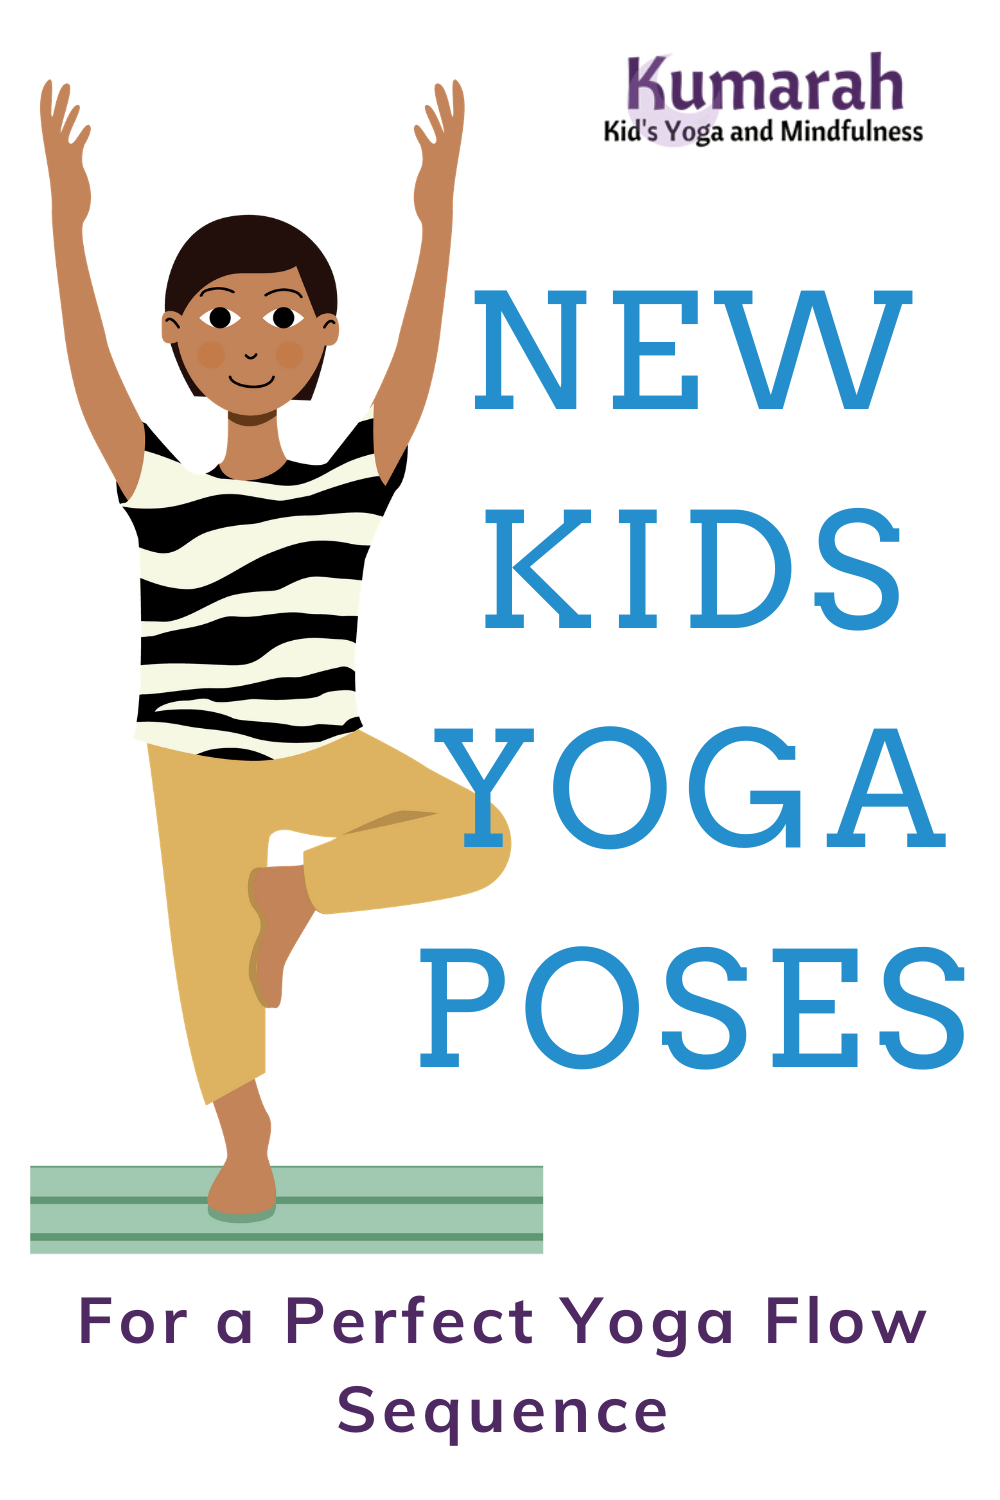 Kids Yoga Pose Cards For A Yoga Flow Sequence Kumarah